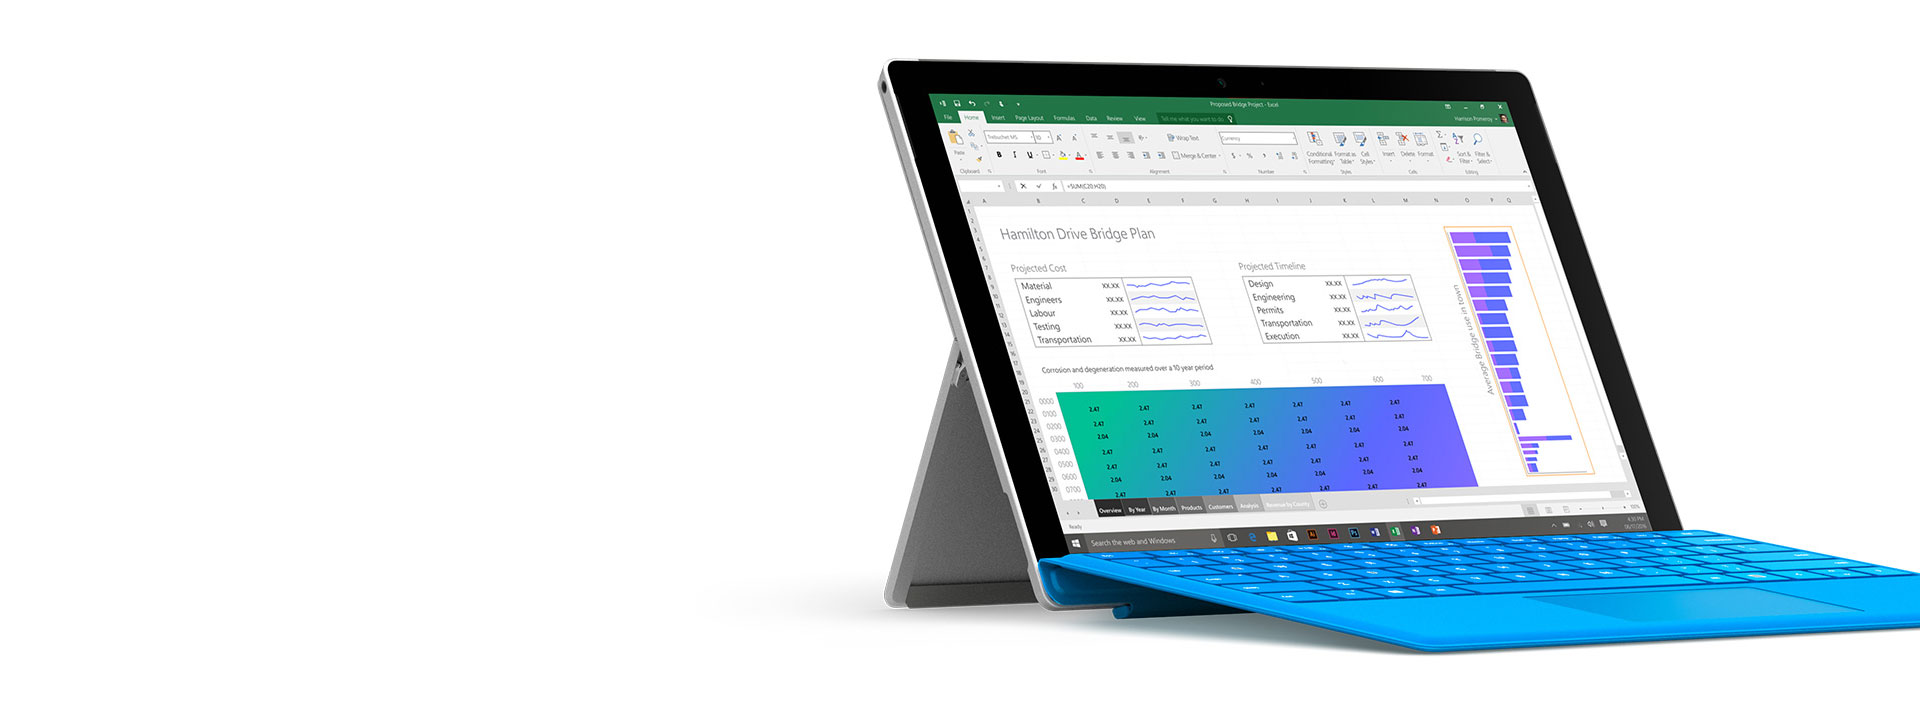 Surface Pro 4 with Office app on screen